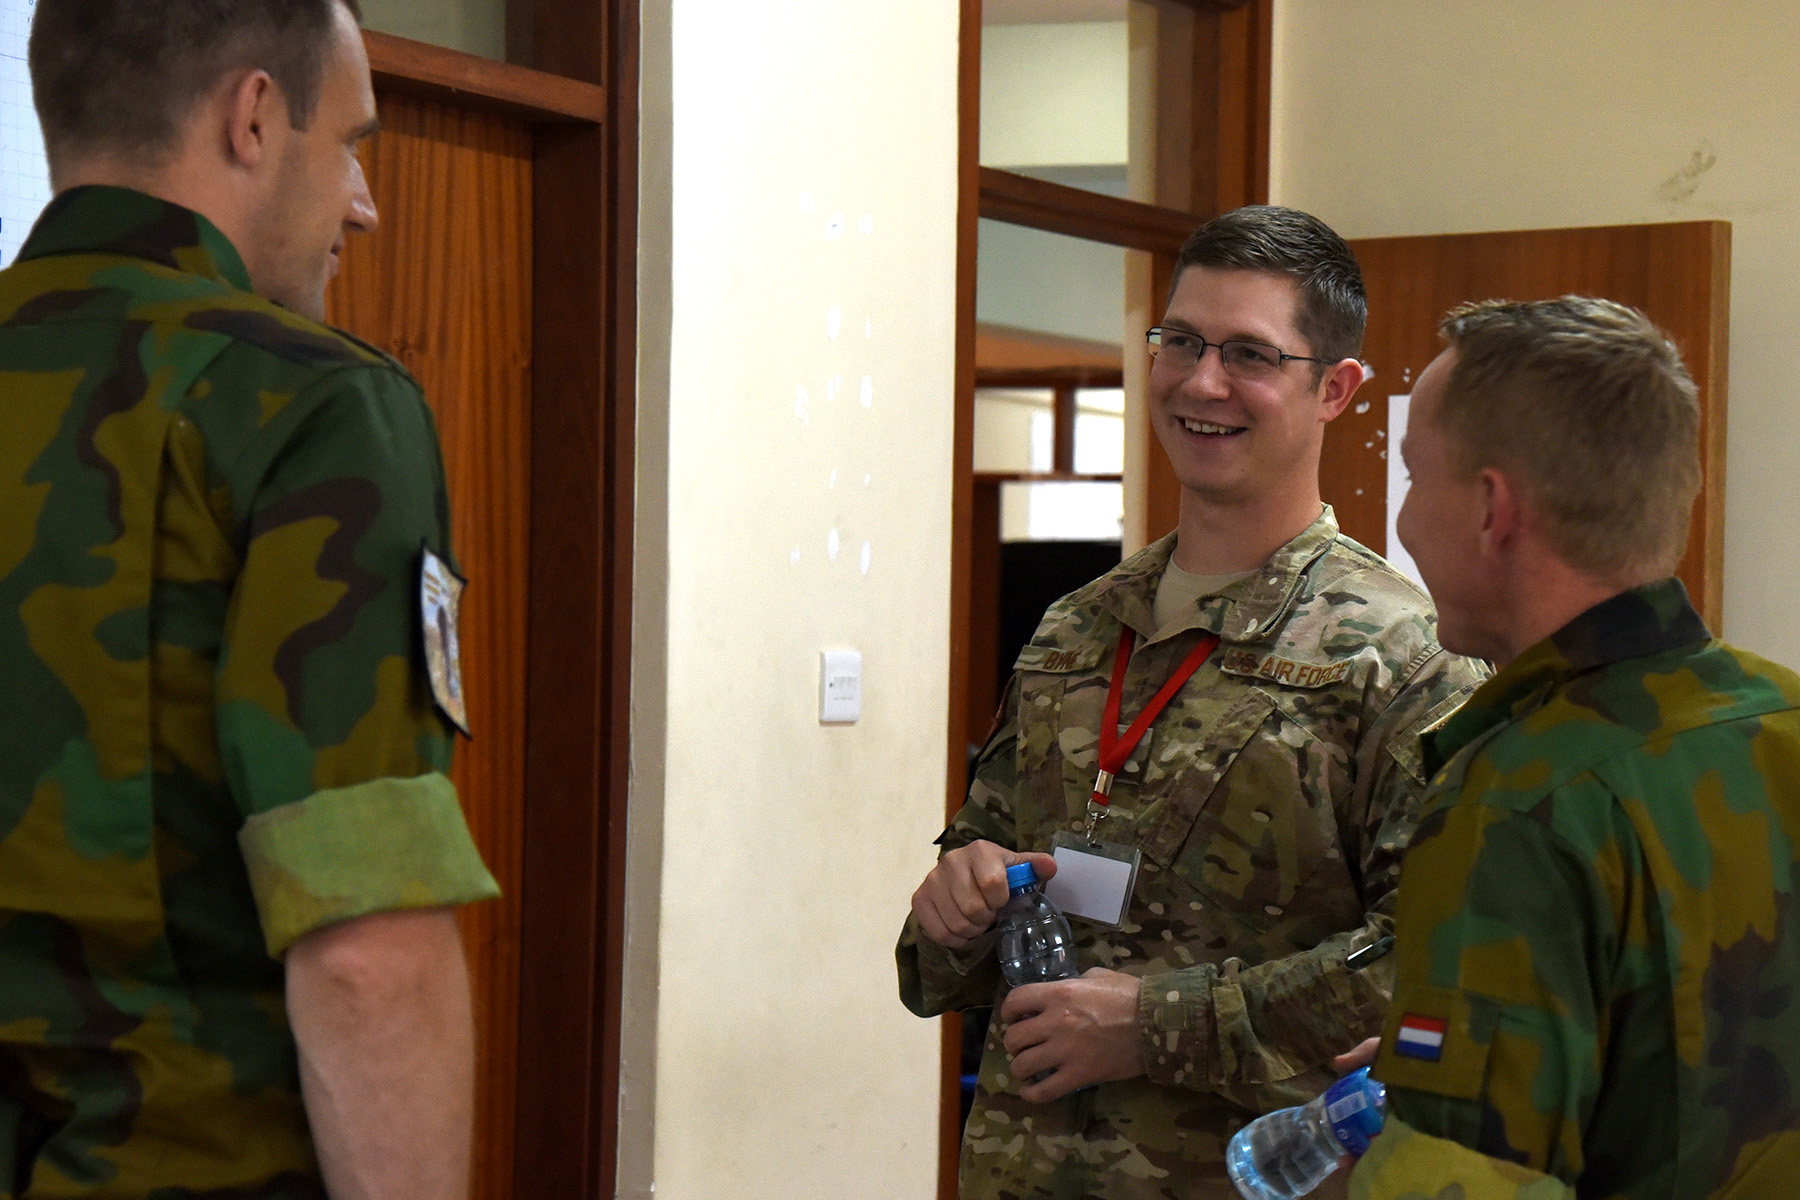 DAR ES SALAAM, Tanzania- U.S. Air Force 1st Lt. Adam Byne, Combined Joint Task Force-Horn of Africa plans officer and Eastern Accord 2016 observer controller/trainer, participates in the command post exercise at the Tanzanian Peacekeeping Training Centre, July 19, 2016, in Dar es Salaam, Tanzania. EA16 is an annual, combined, joint military exercise that brings together partner nations to practice and demonstrate proficiency in conducting peacekeeping operations. (U.S. Air Force photo by Staff Sgt. Tiffany DeNault)